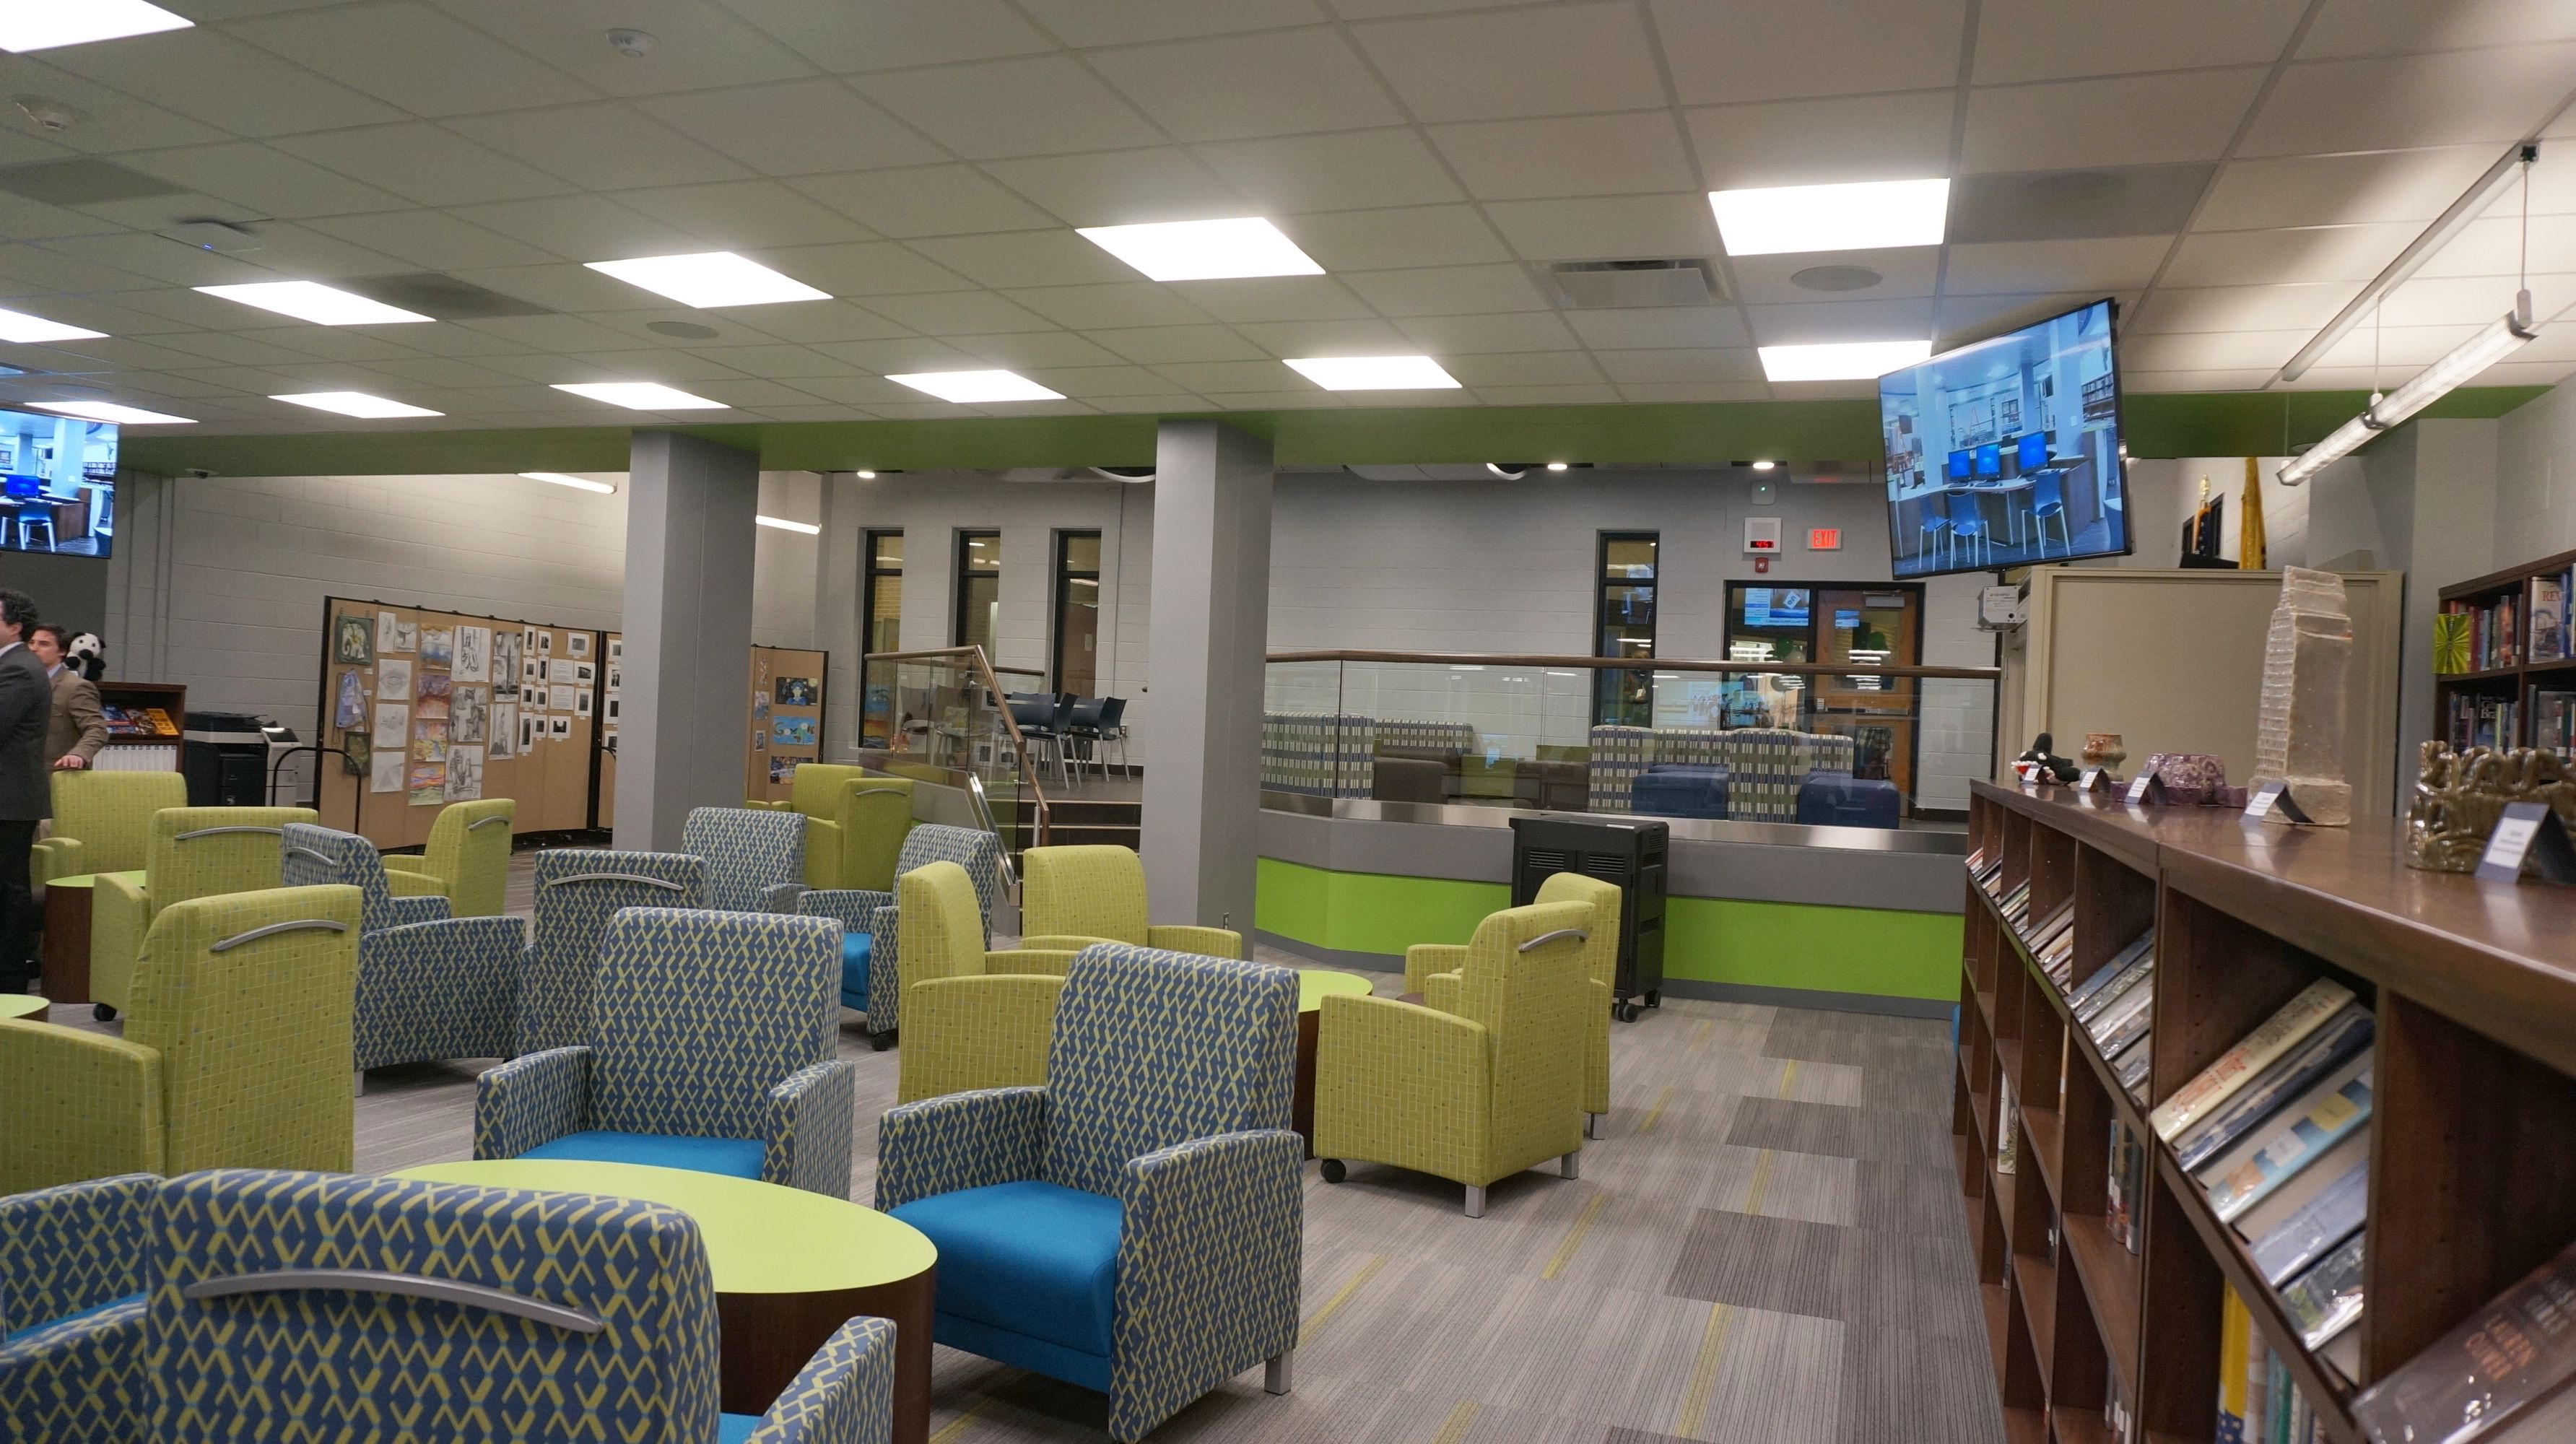 Related image | Library Remodel | Media center, High school